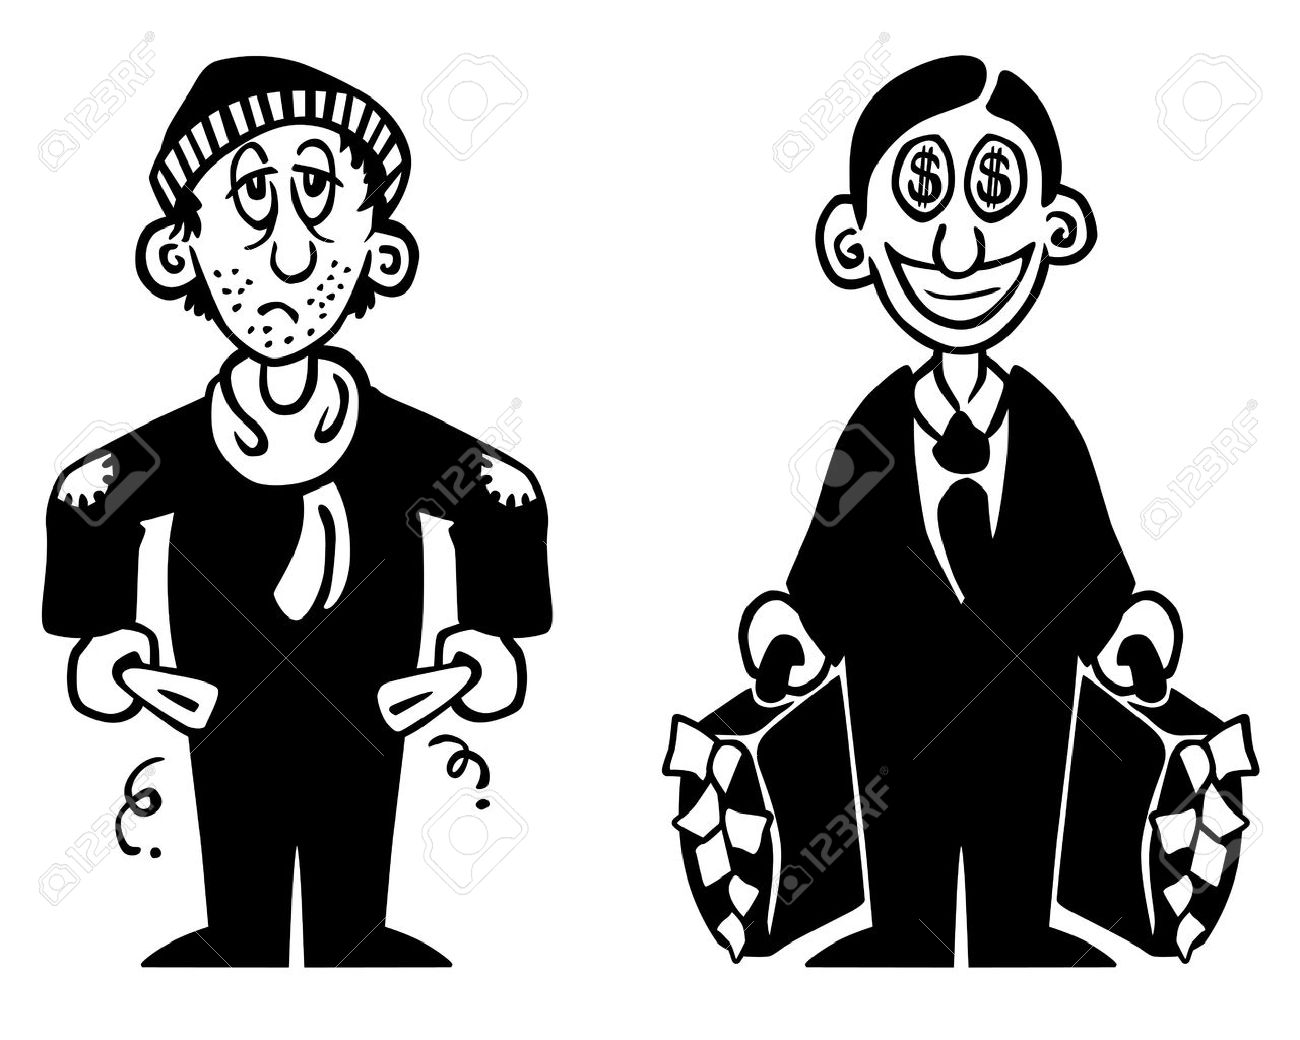 Black and white illustration of a poor and a rich man royalty free black and white illustration of a poor and a rich man stock vector 14631796 sciox Images